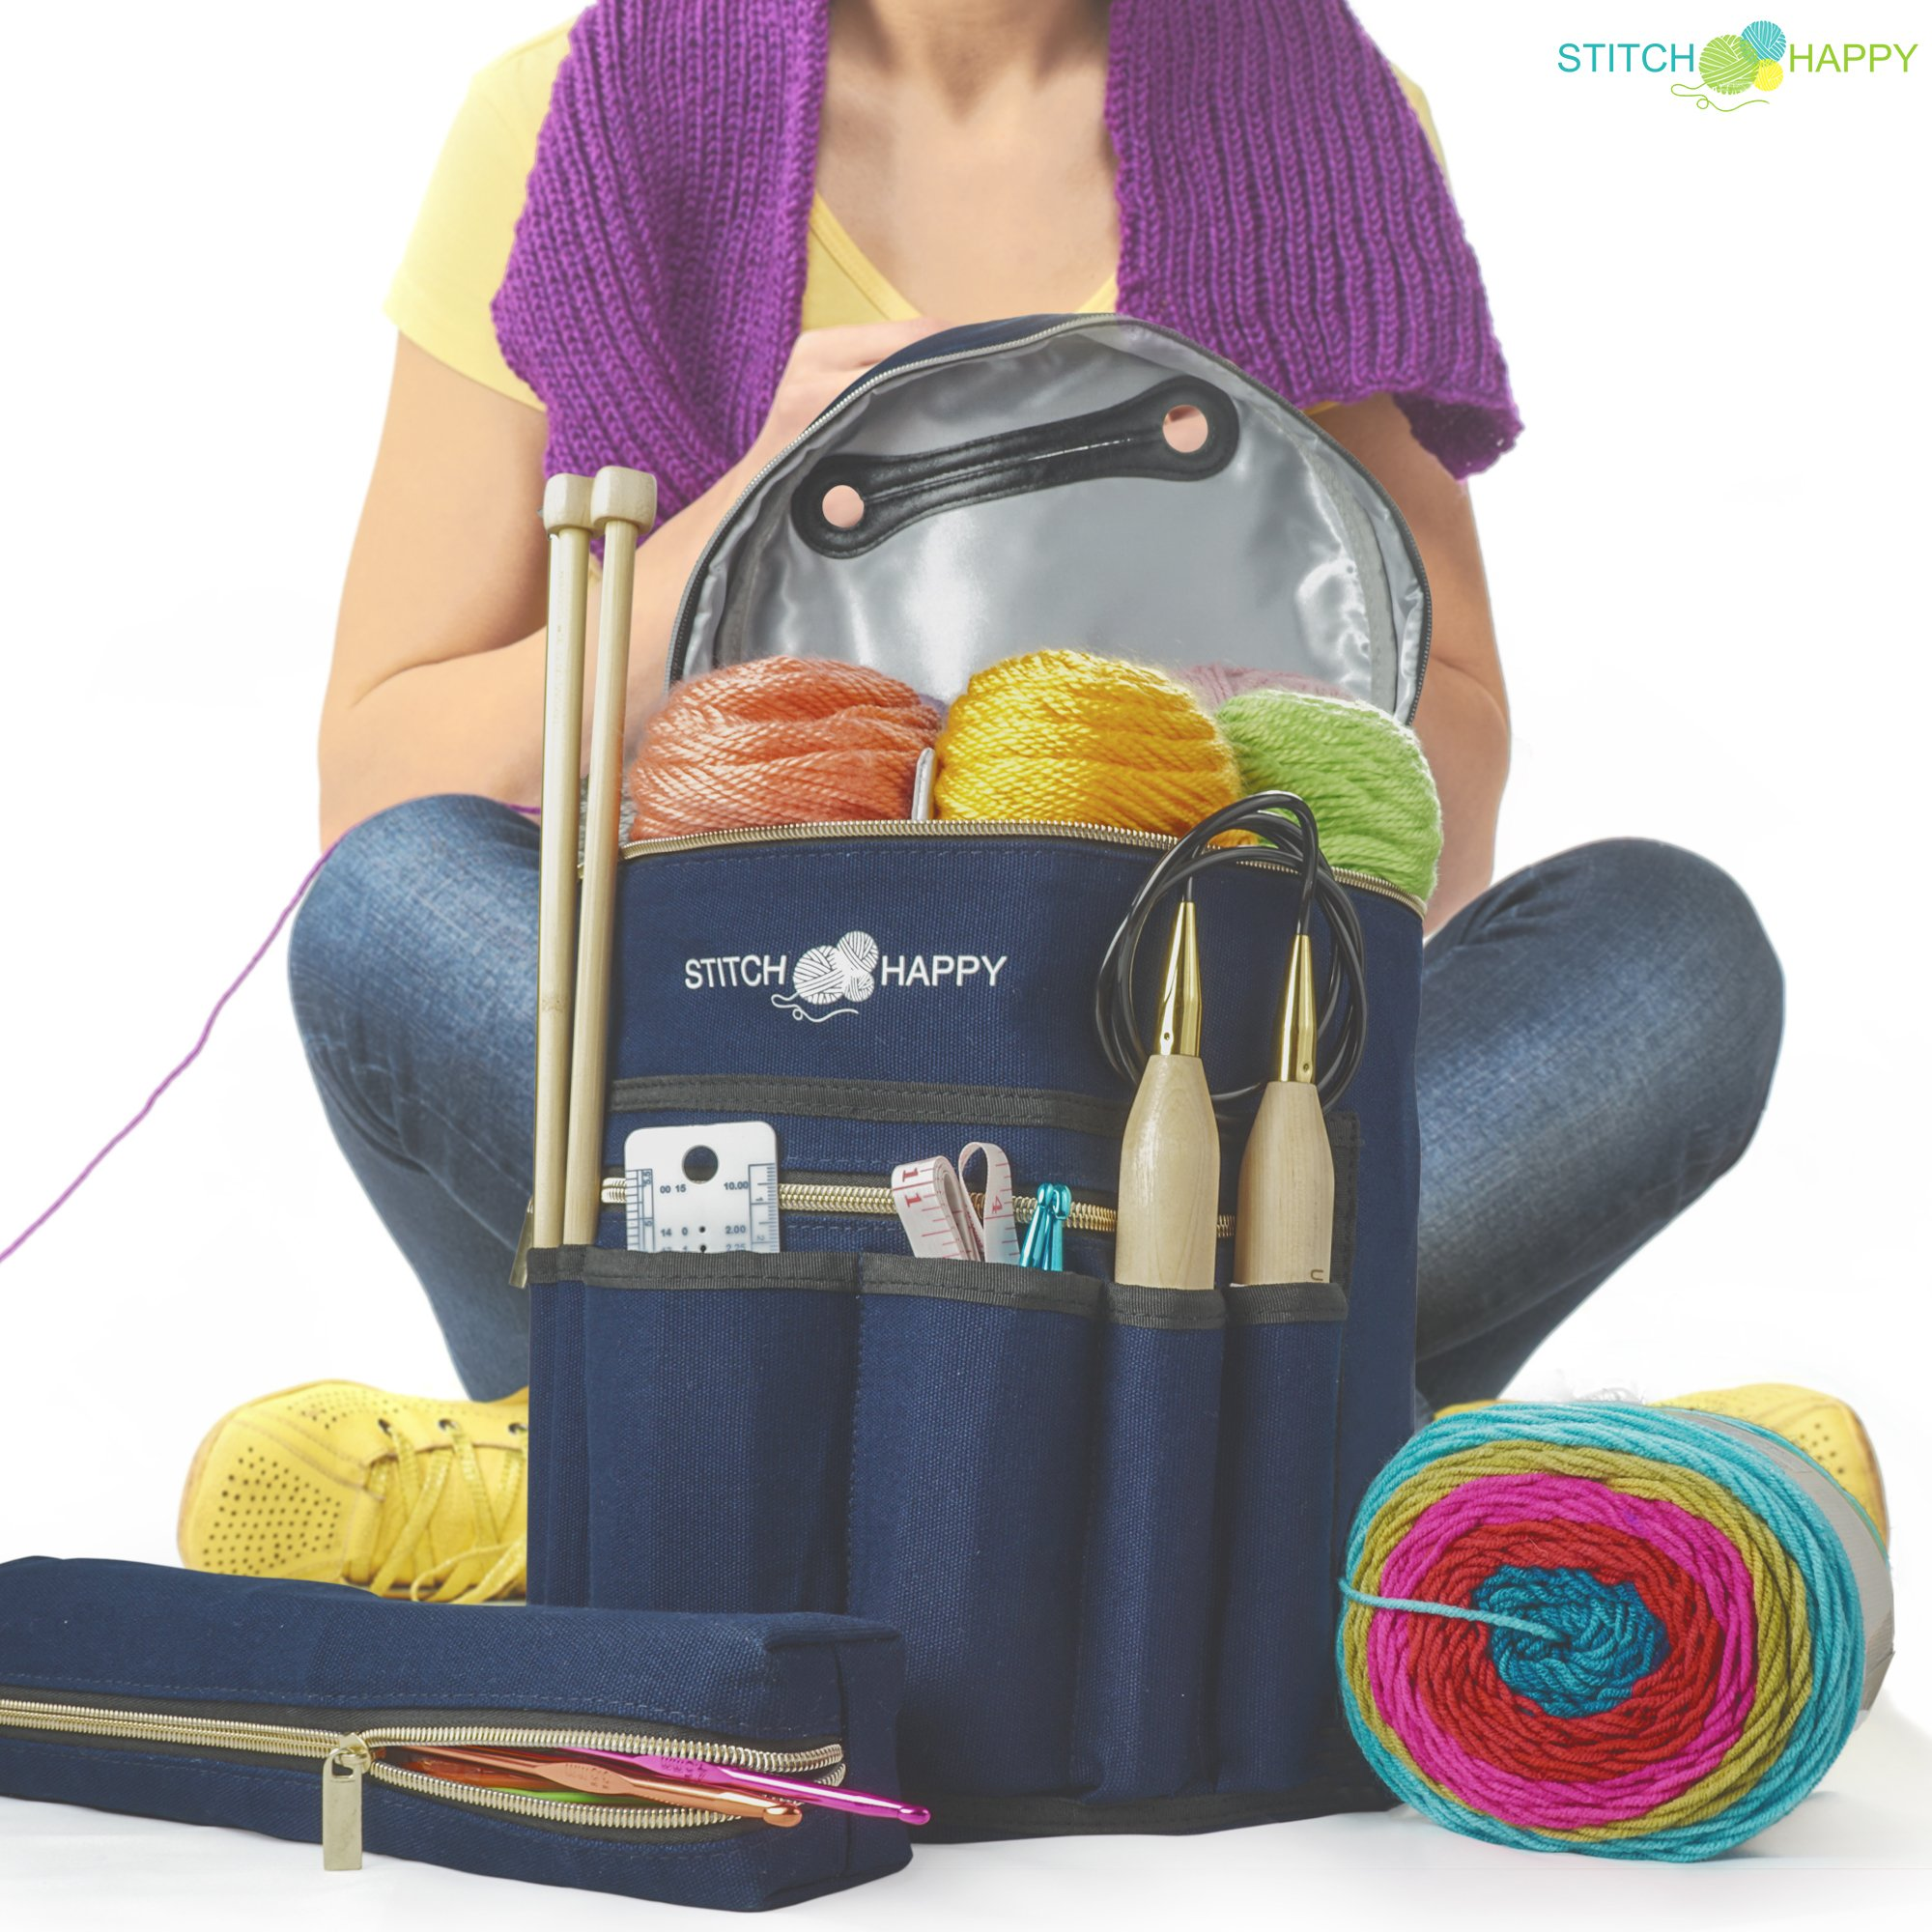 Knitting Bag - Yarn Tote Organizer w/Tool Case, 7 Pockets + Divider for Extra Storage of Projects, Supplies & Crochet (Navy) by Stitch Happy by Stitch Happy (Image #9)